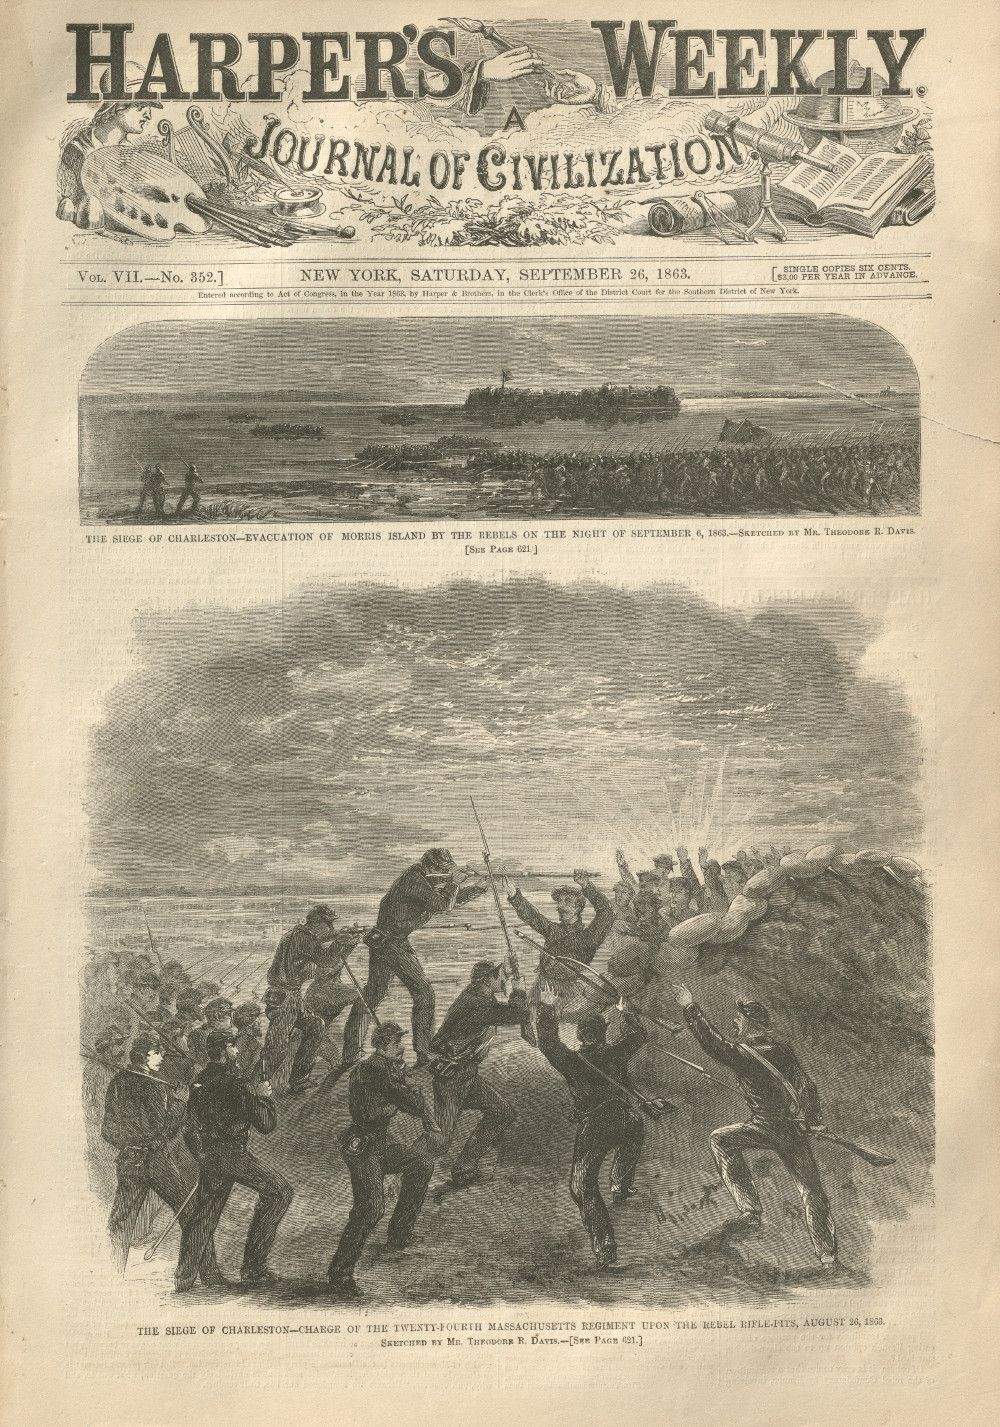 Harper's Weekly With Illustrated Story About Five Union Soldiers, Including a Jew, Executed for Desertion